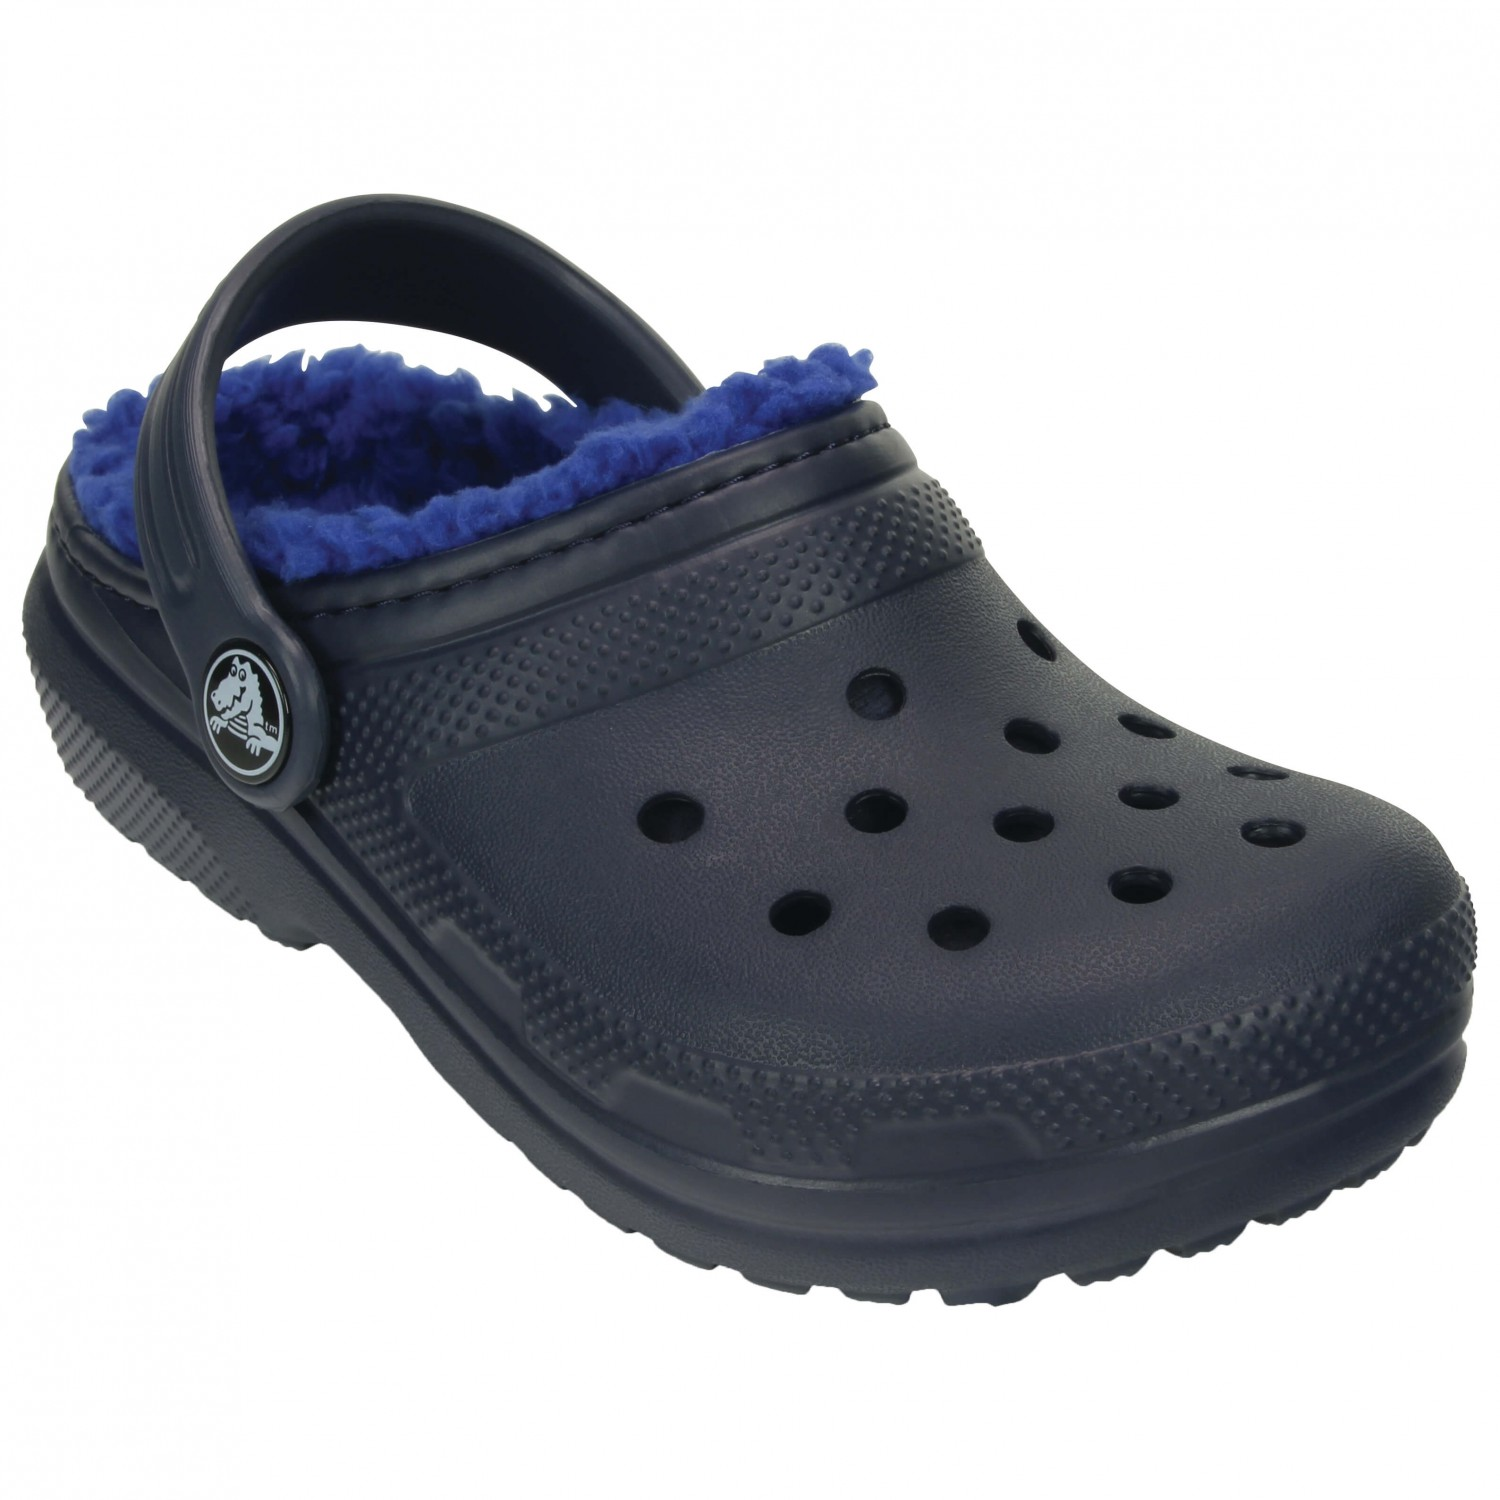 Crocs Classic Lined Clog Slippers Kids Buy Online